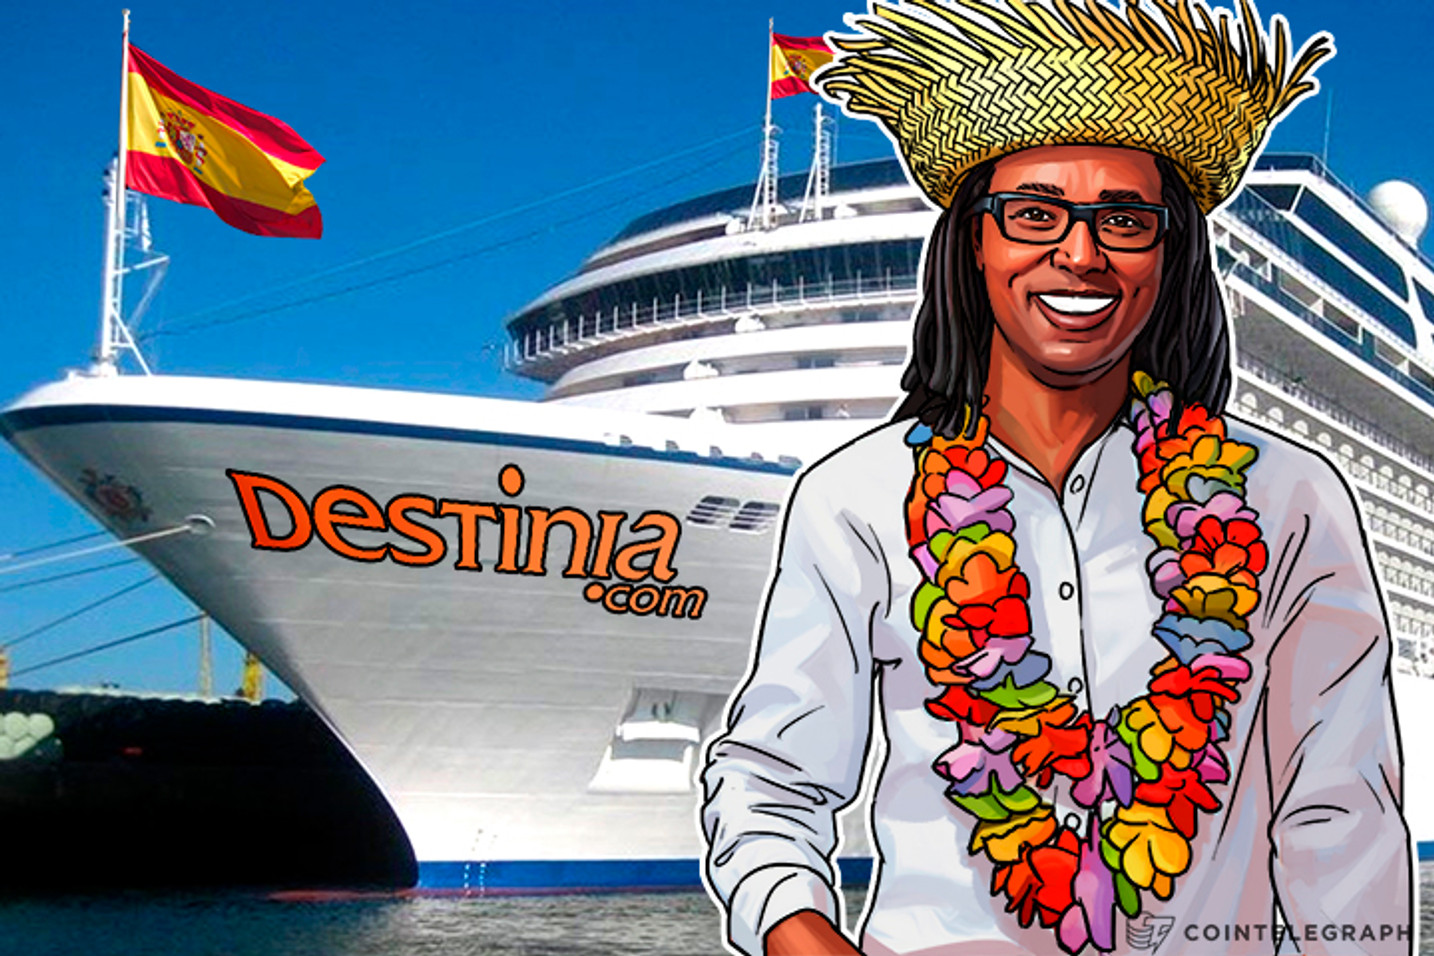 Spain's Most Popular Travel Agency Destinia Offers Bitcoin Discounts